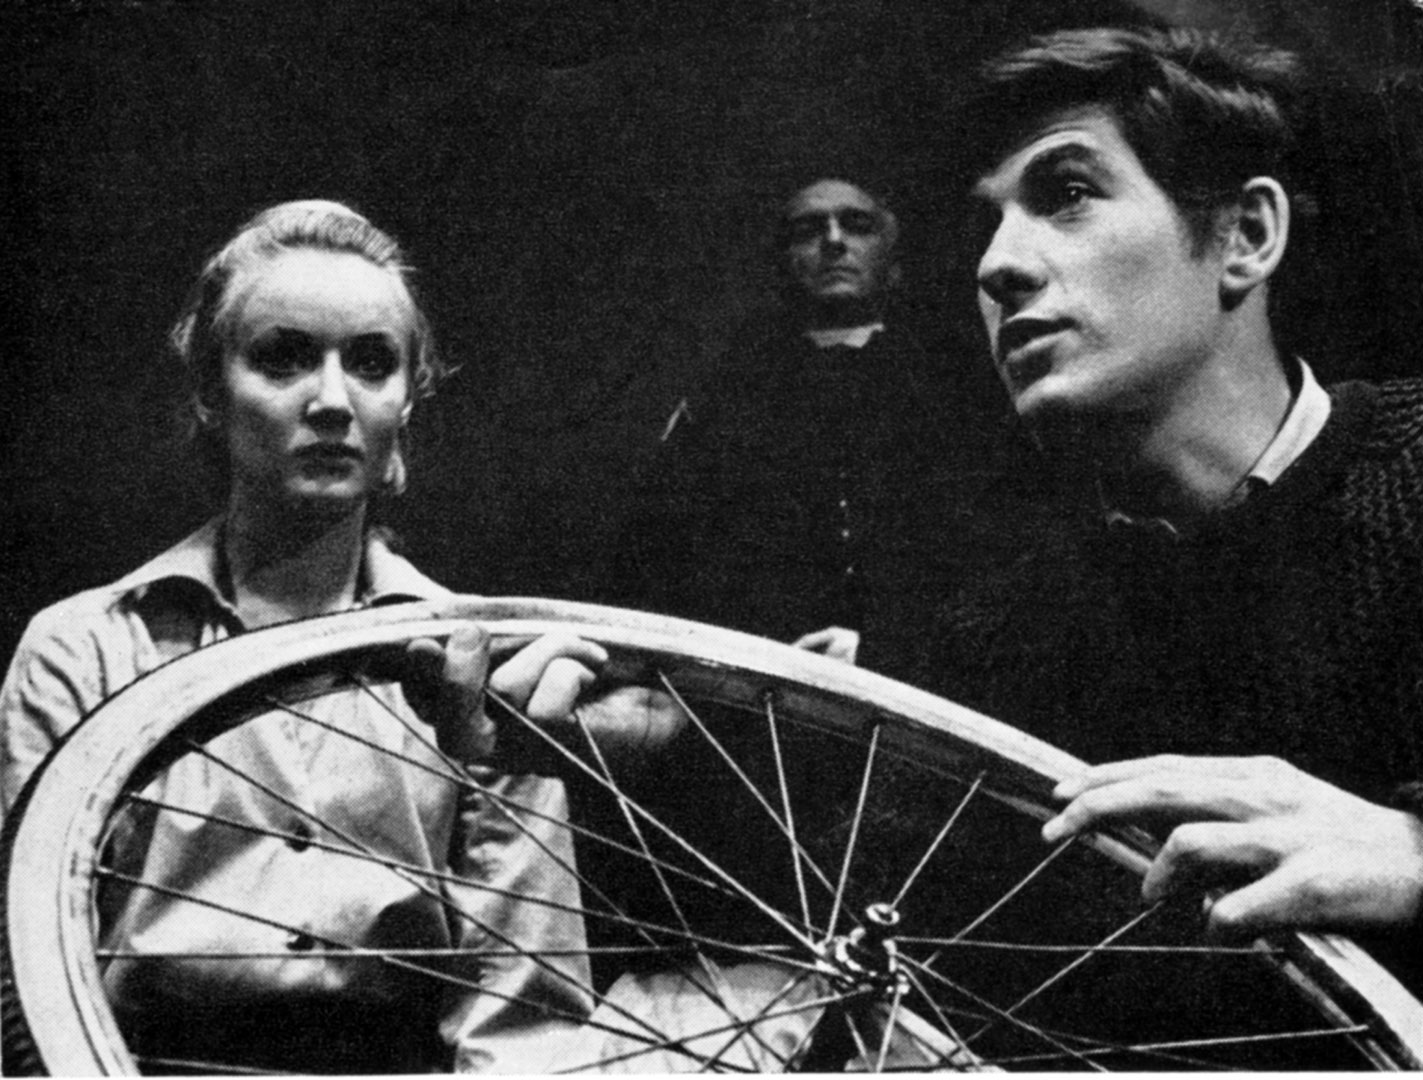 Jennifer Hilary as Zoe watches unseeingly as her stepbrother Godfrey (Ian McKellen) mends a puncture. In the background, the Priest is played by Peter Howell<br><em> </em>